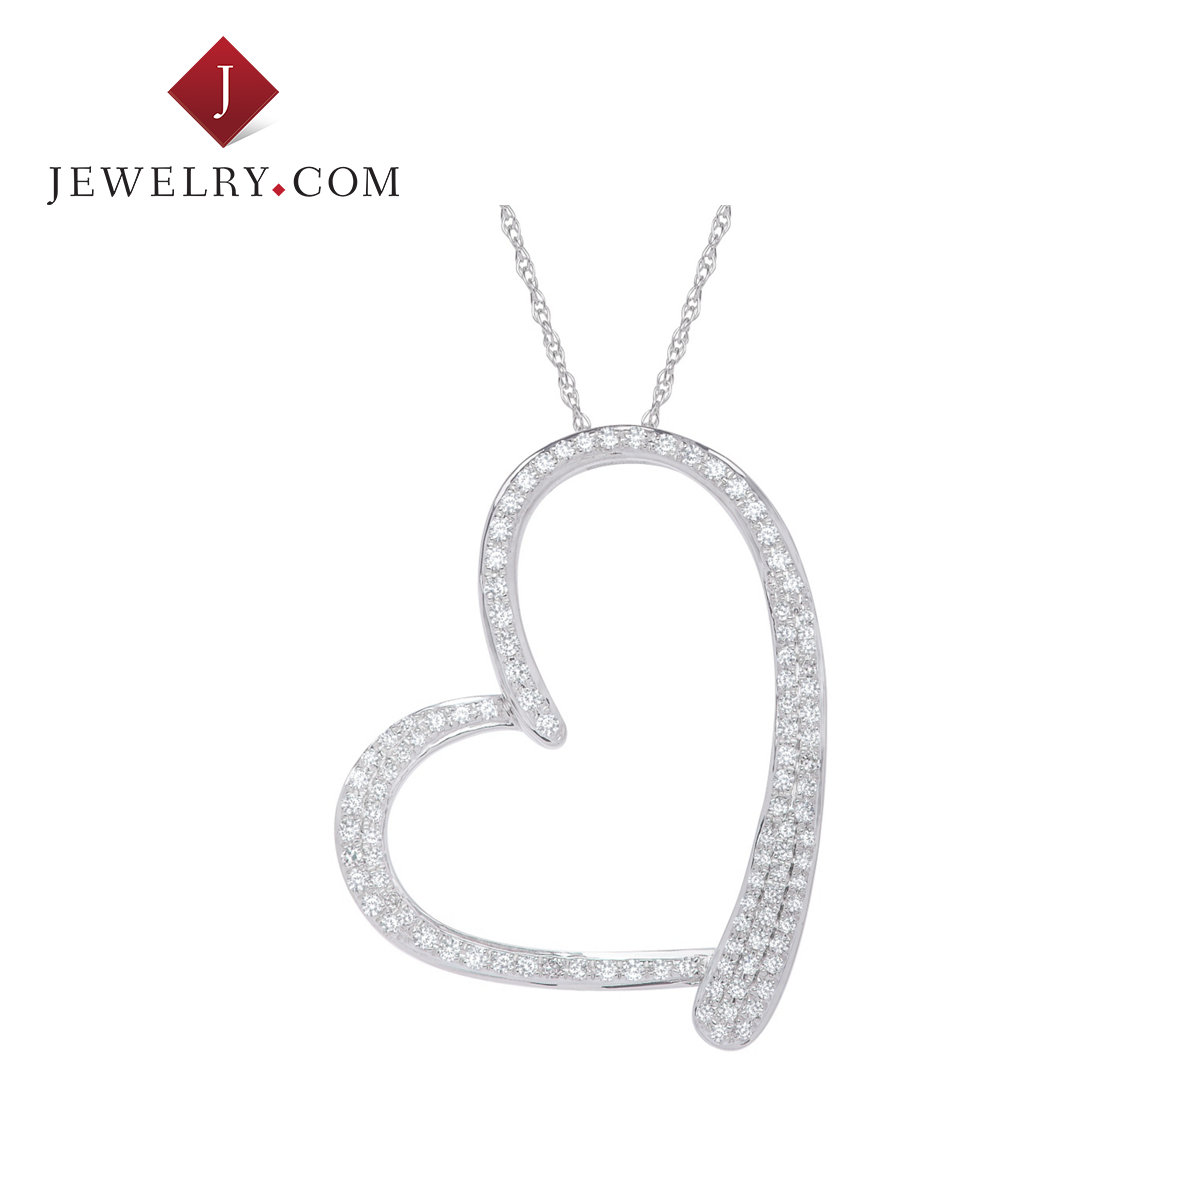 Jewelry.com official ms. heart pendant in sterling silver 0.5 karat k white gold diamond sweet fresh and elegant style